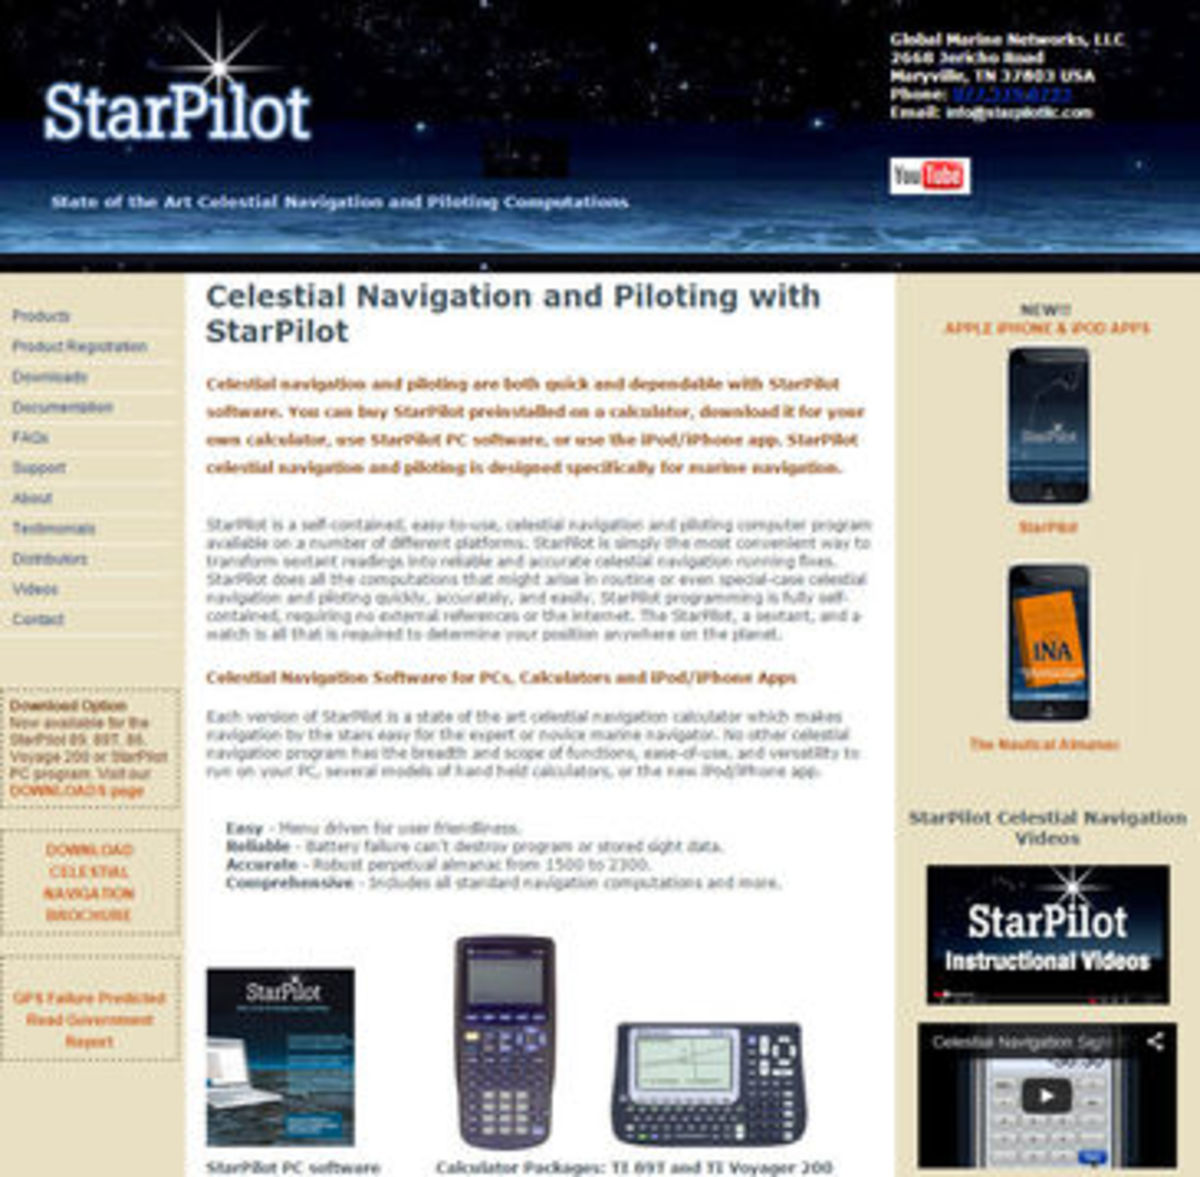 StarPilot_home_page_aPanbo.jpg